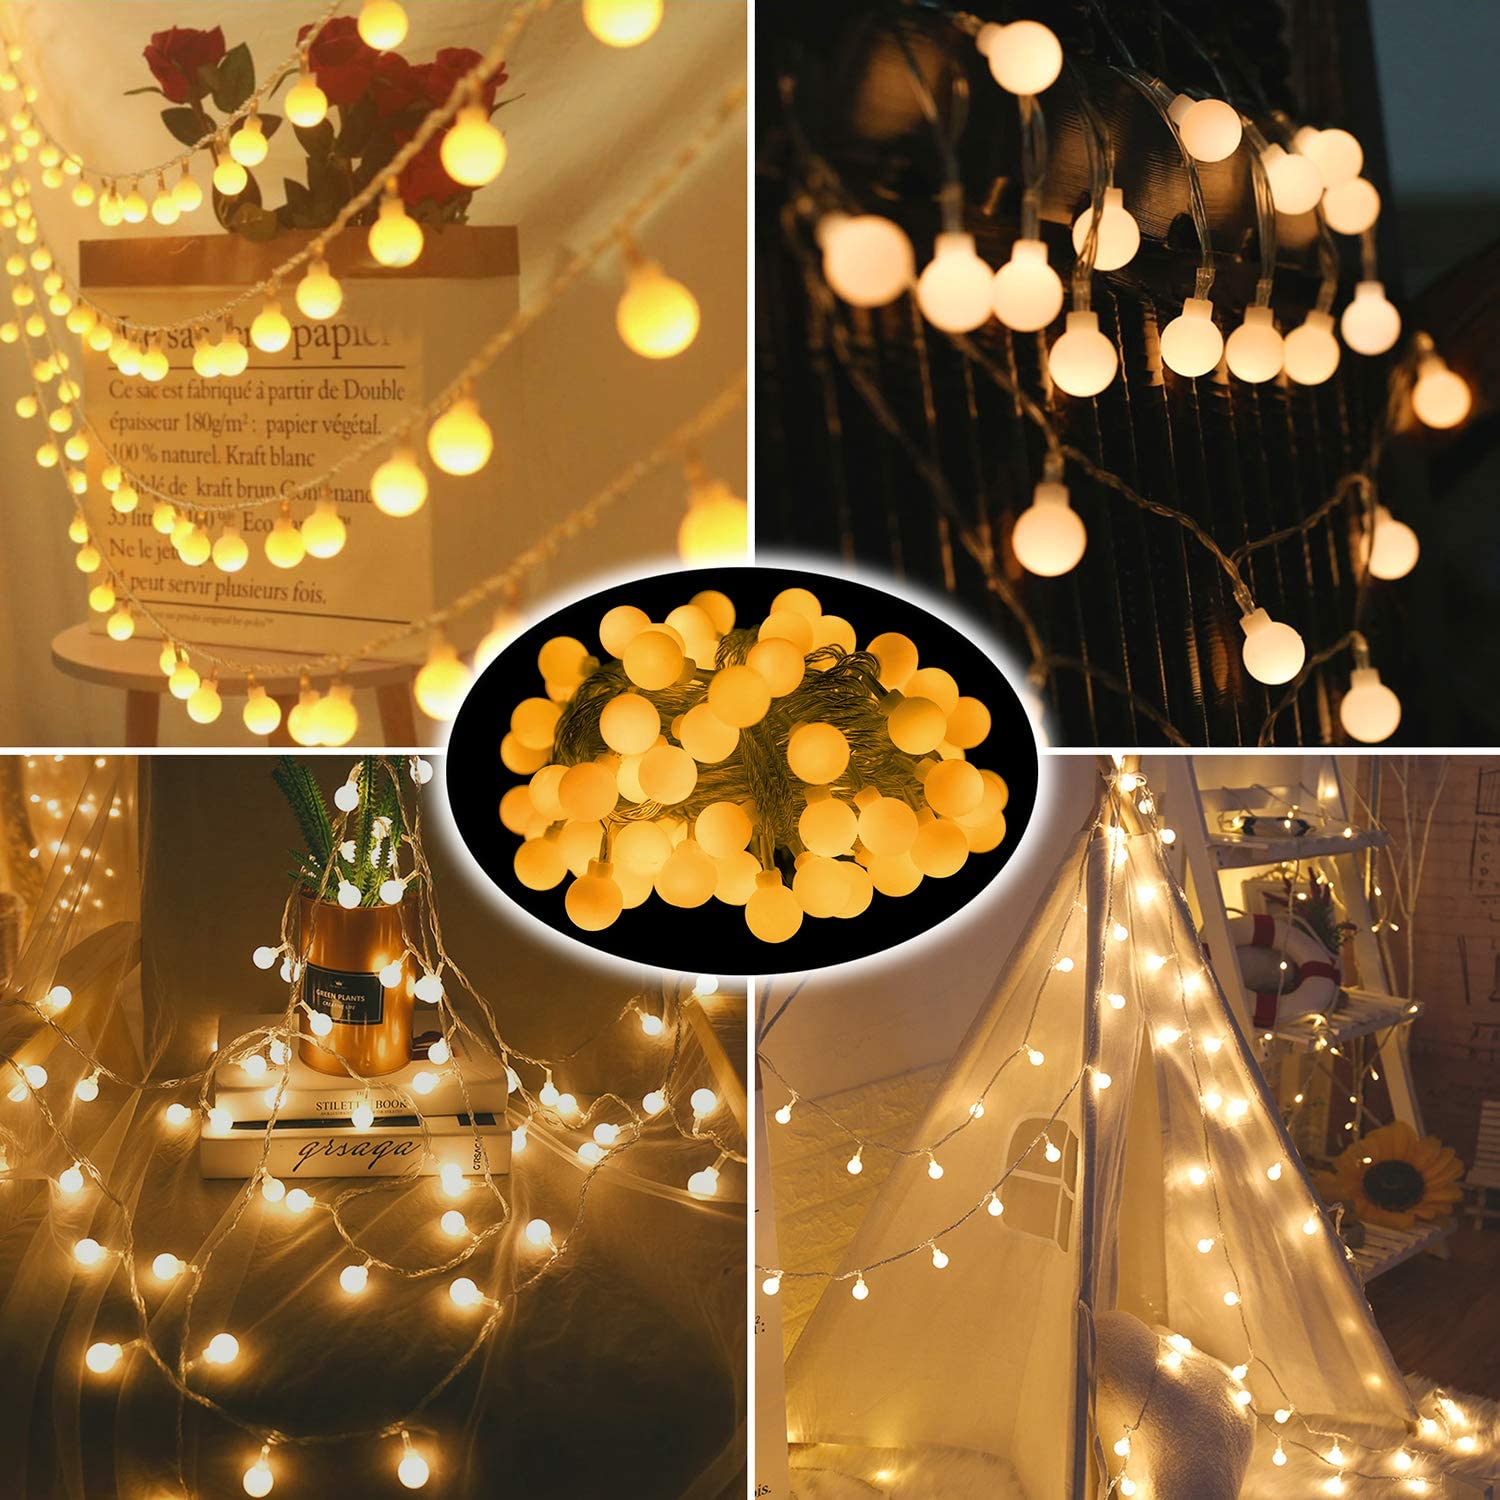 Globe LED String Lights 100 Crystal Plush Fur Ball Twinkle Lights for Bedroom Home Room Wall Decor Christmas Tree Fairy Hanging Lights for Garden Wedding Birthday Party and Camping (Smooth Ball)